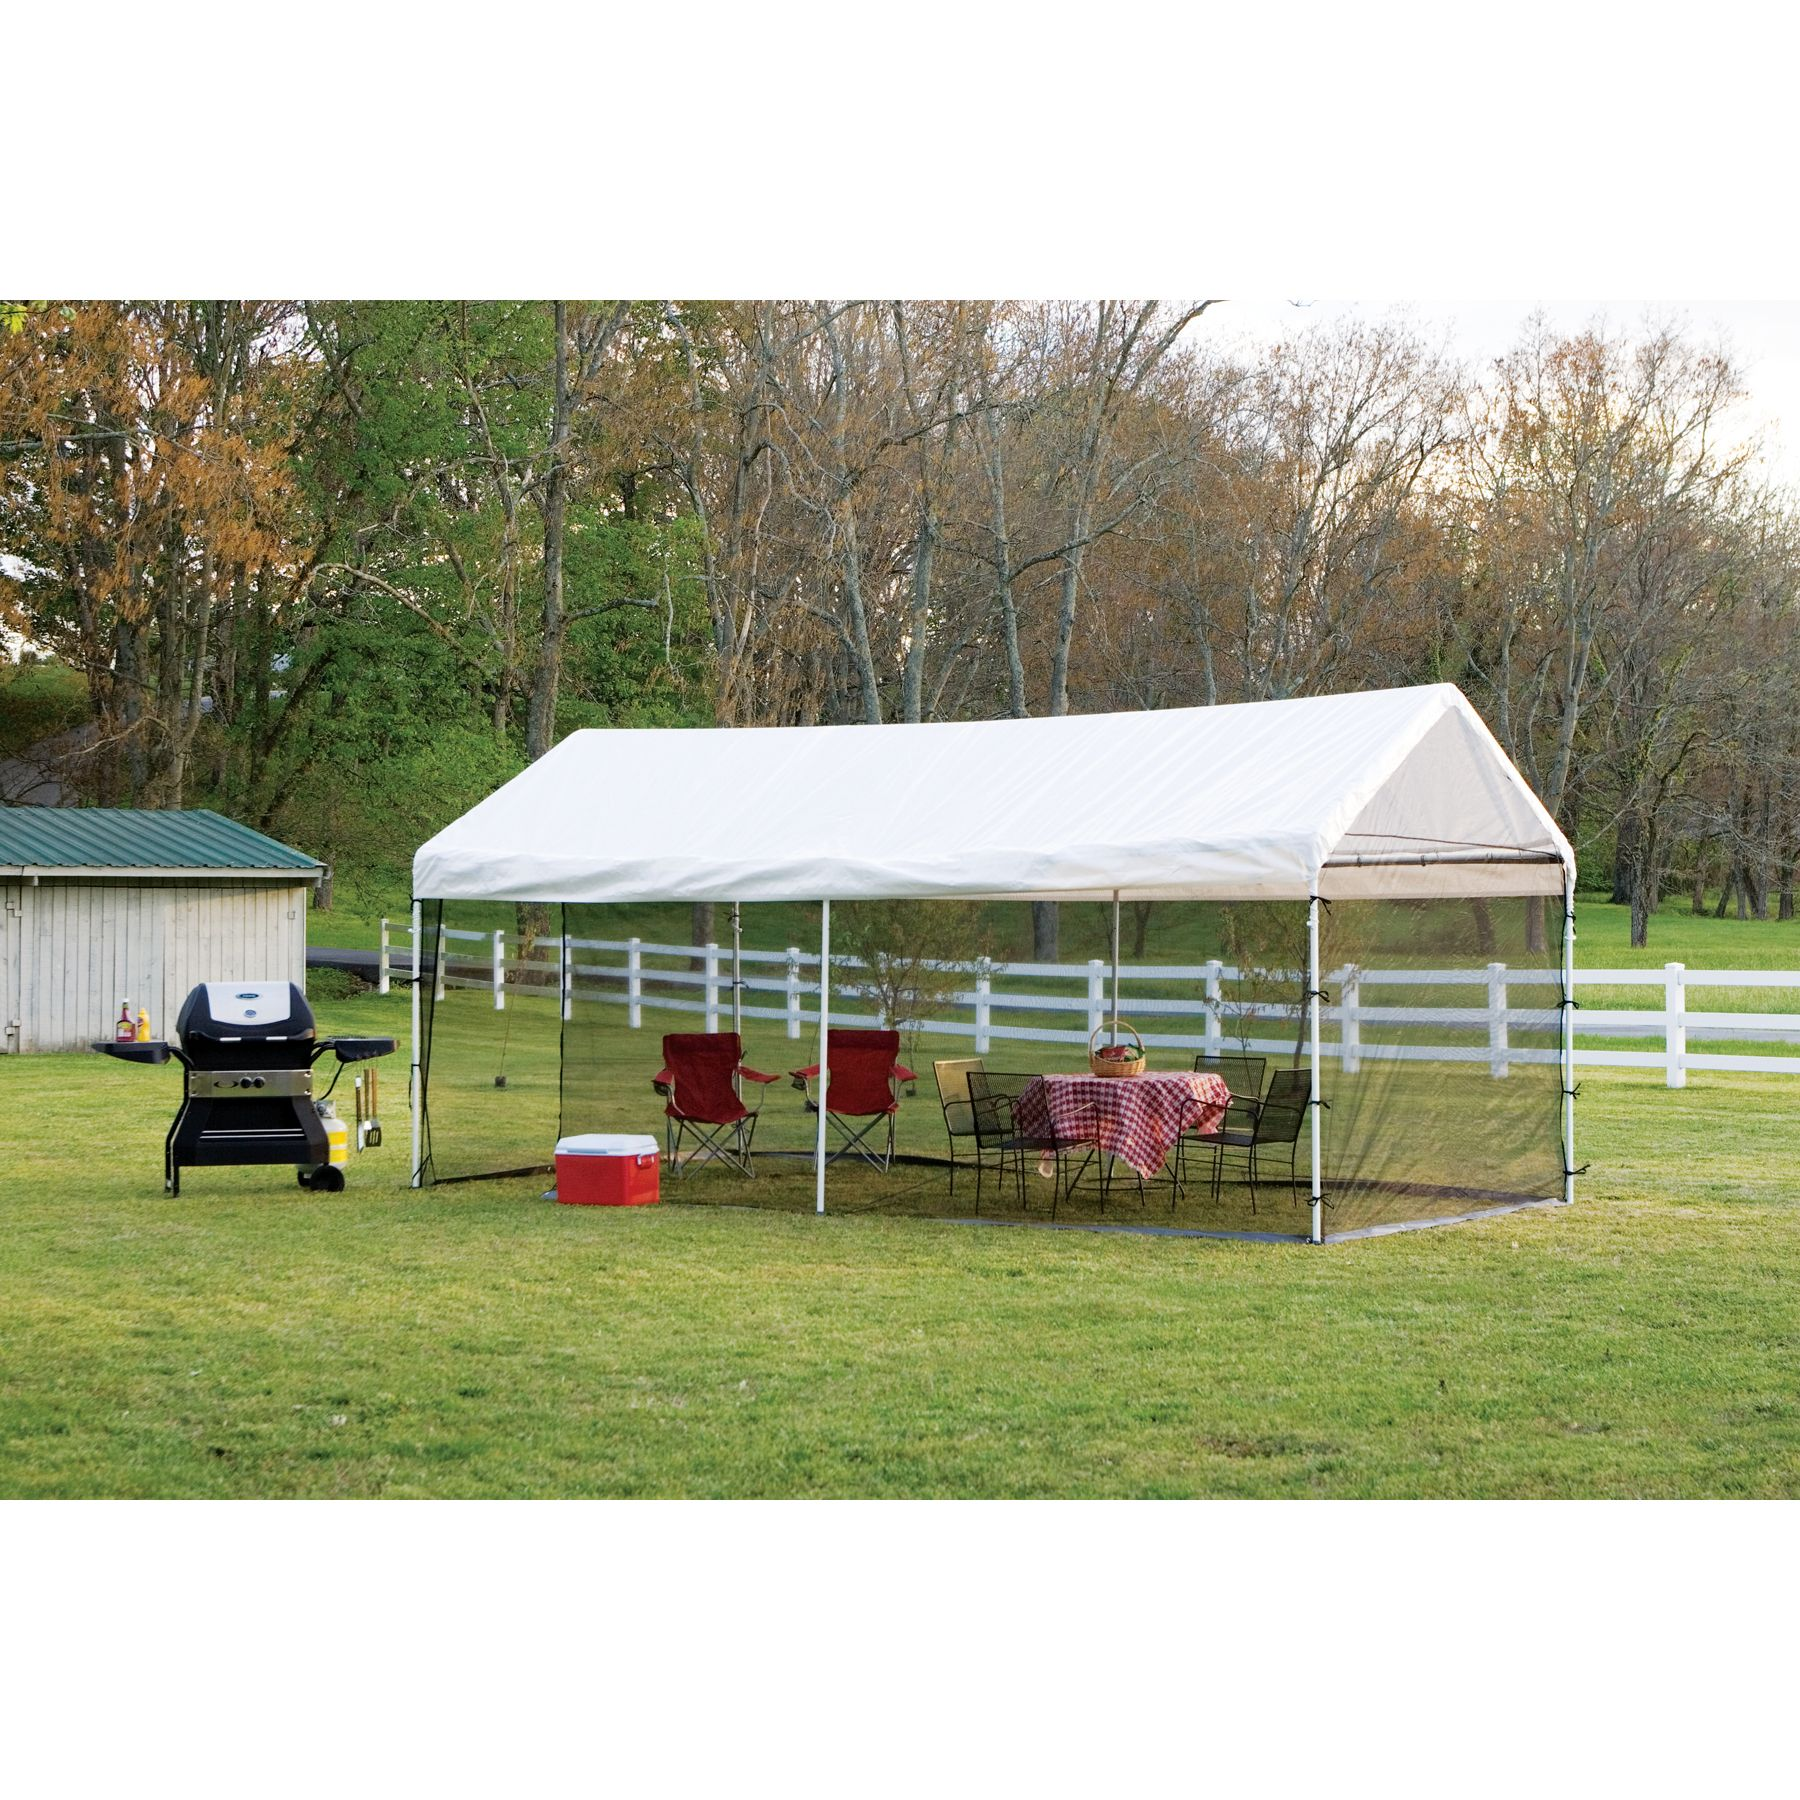 Shelterlogic 10x20 Canopy Screen House Kit - Black